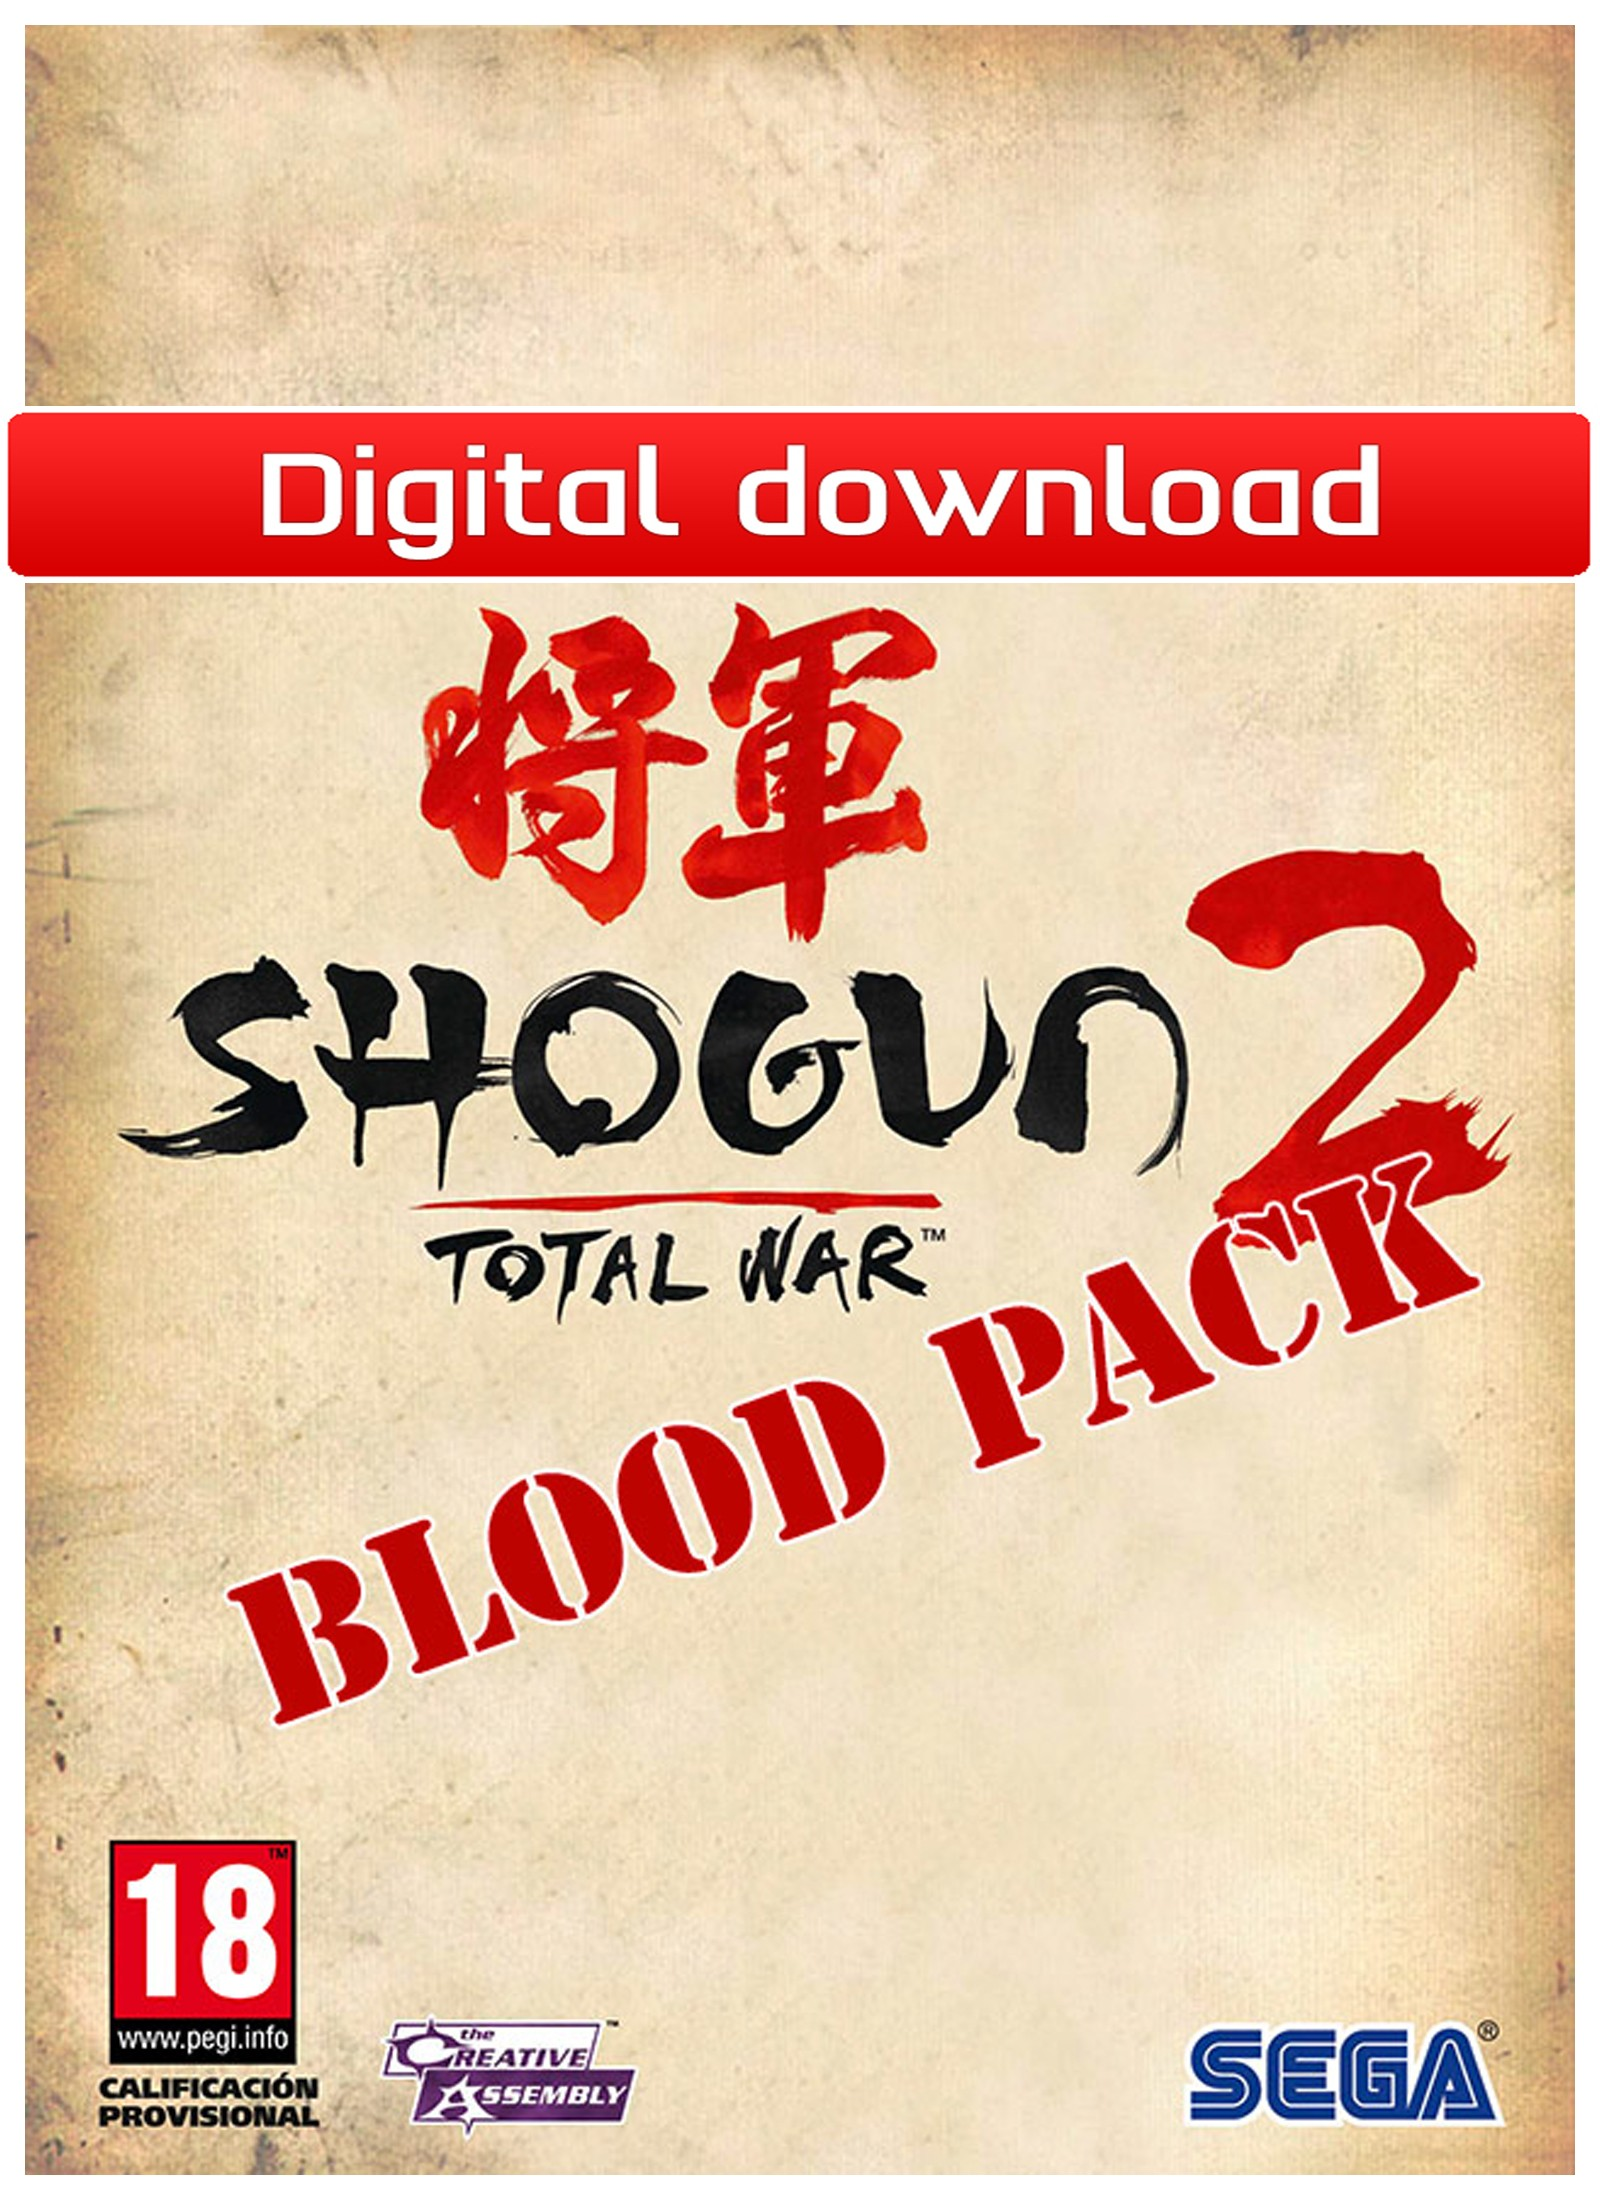 28209 : Total War: Shogun 2: Blood Pack (PC nedlastning)